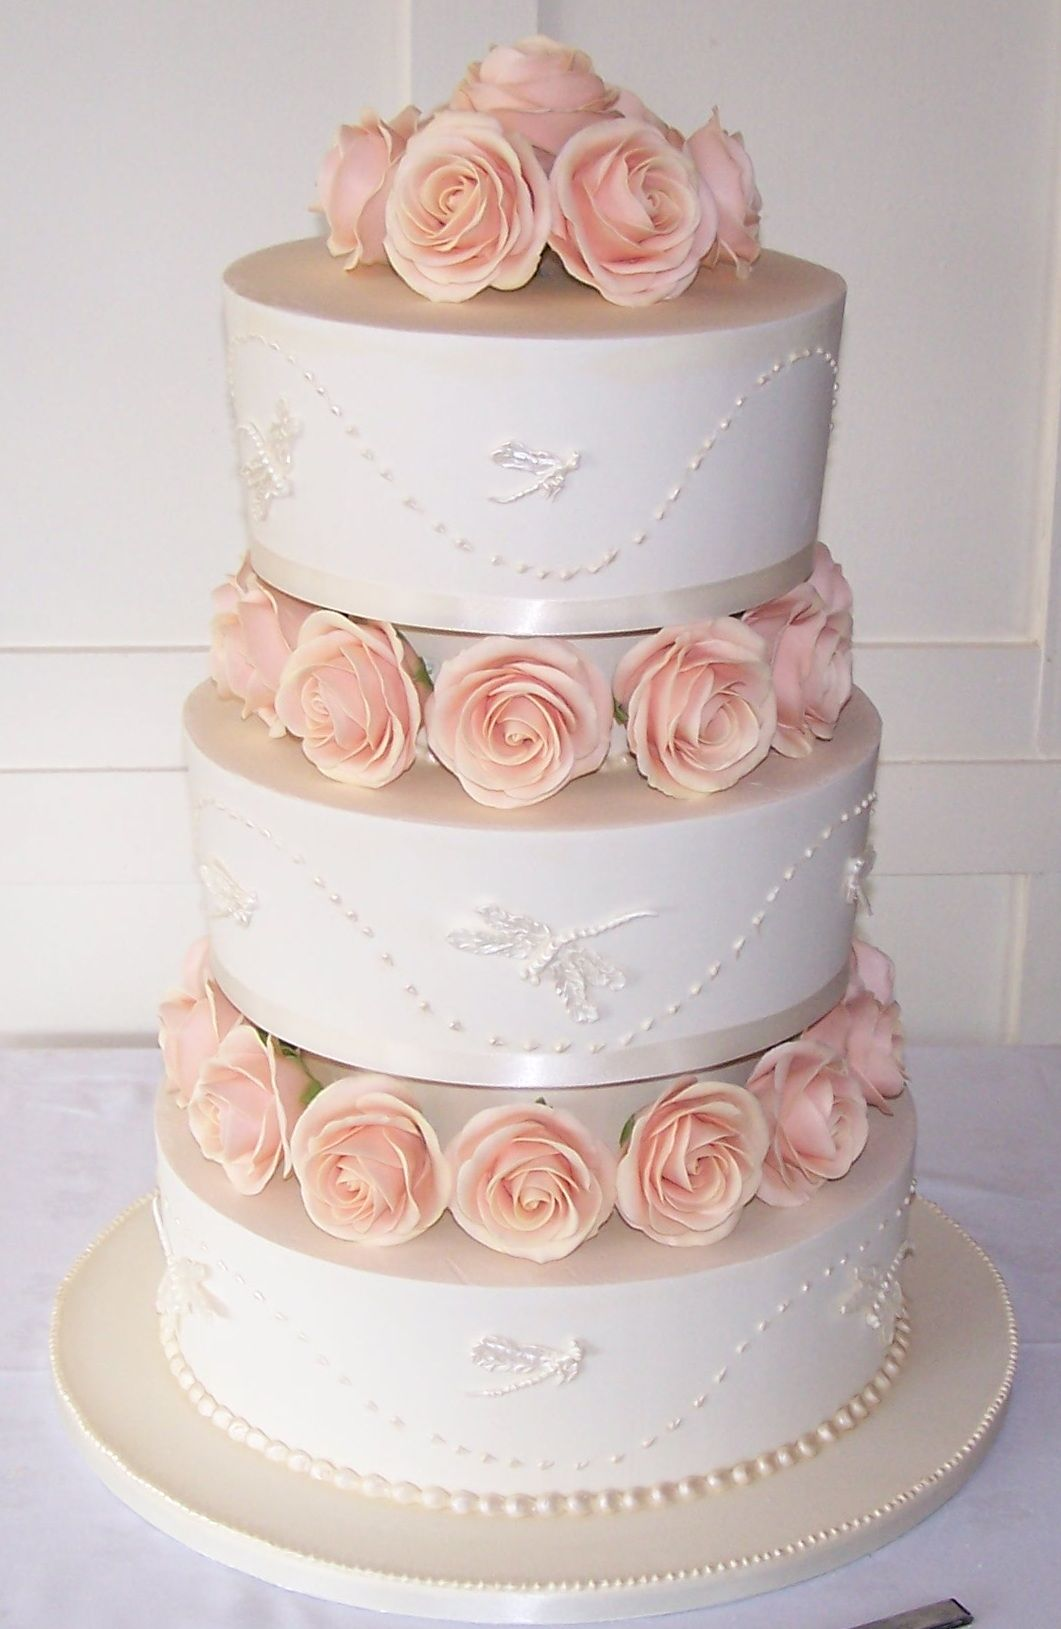 3 Tier Wedding Cake With Sugar Roses And Royal Icing